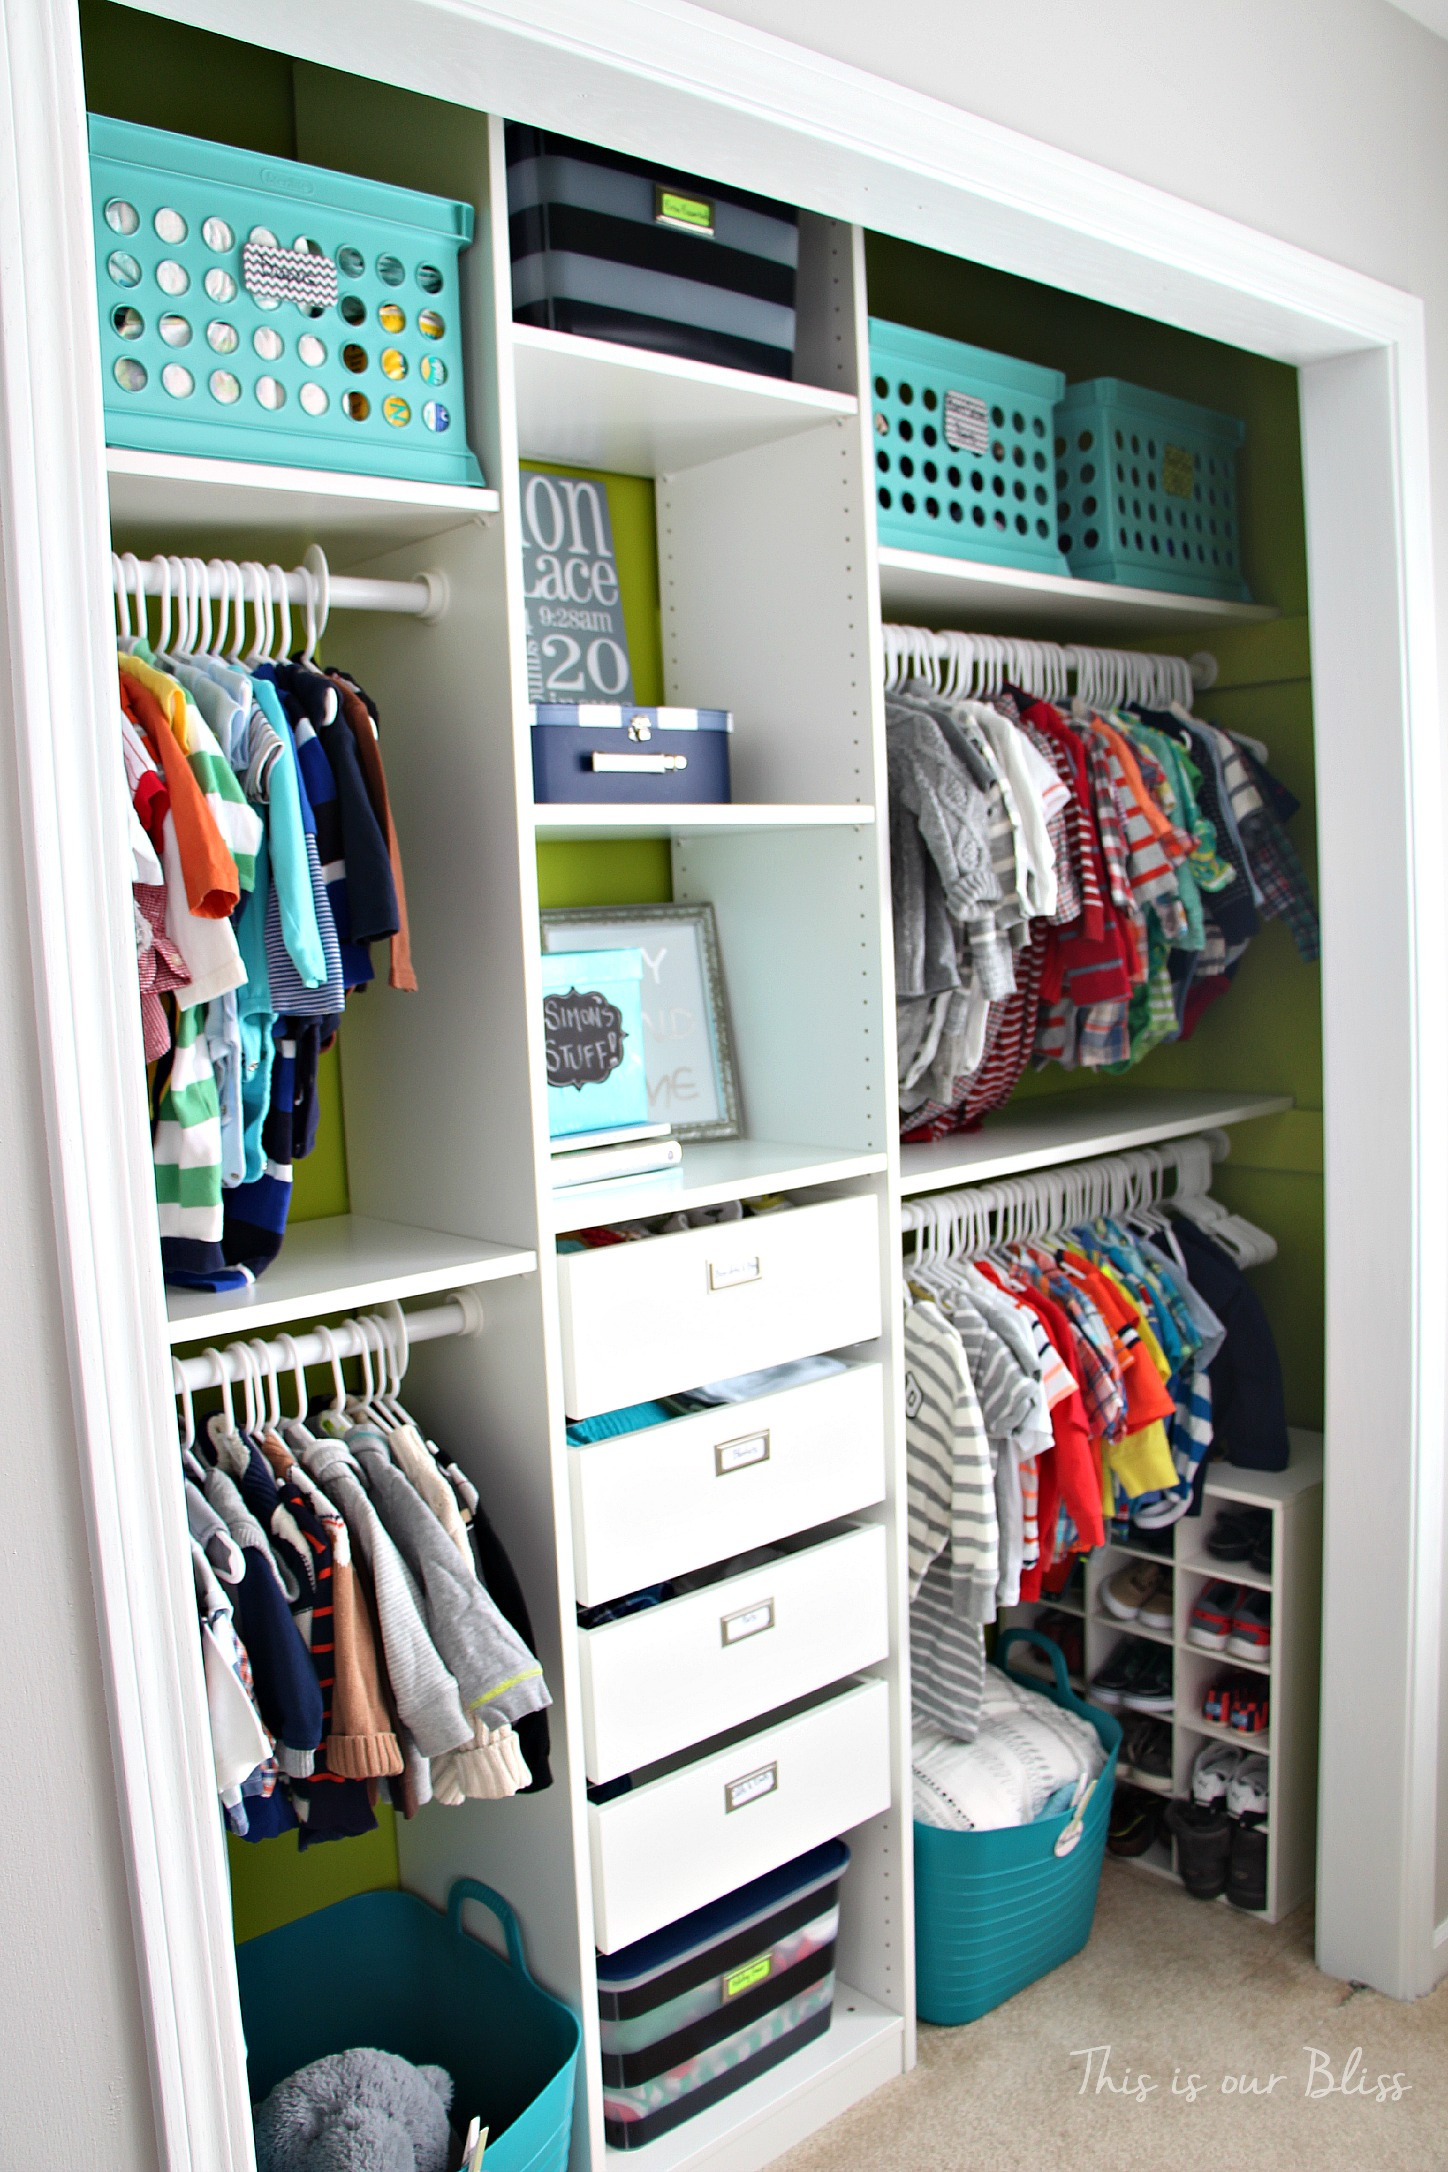 Nursery Closet Makeover Details How To DIY A Closet This Is Our Bliss